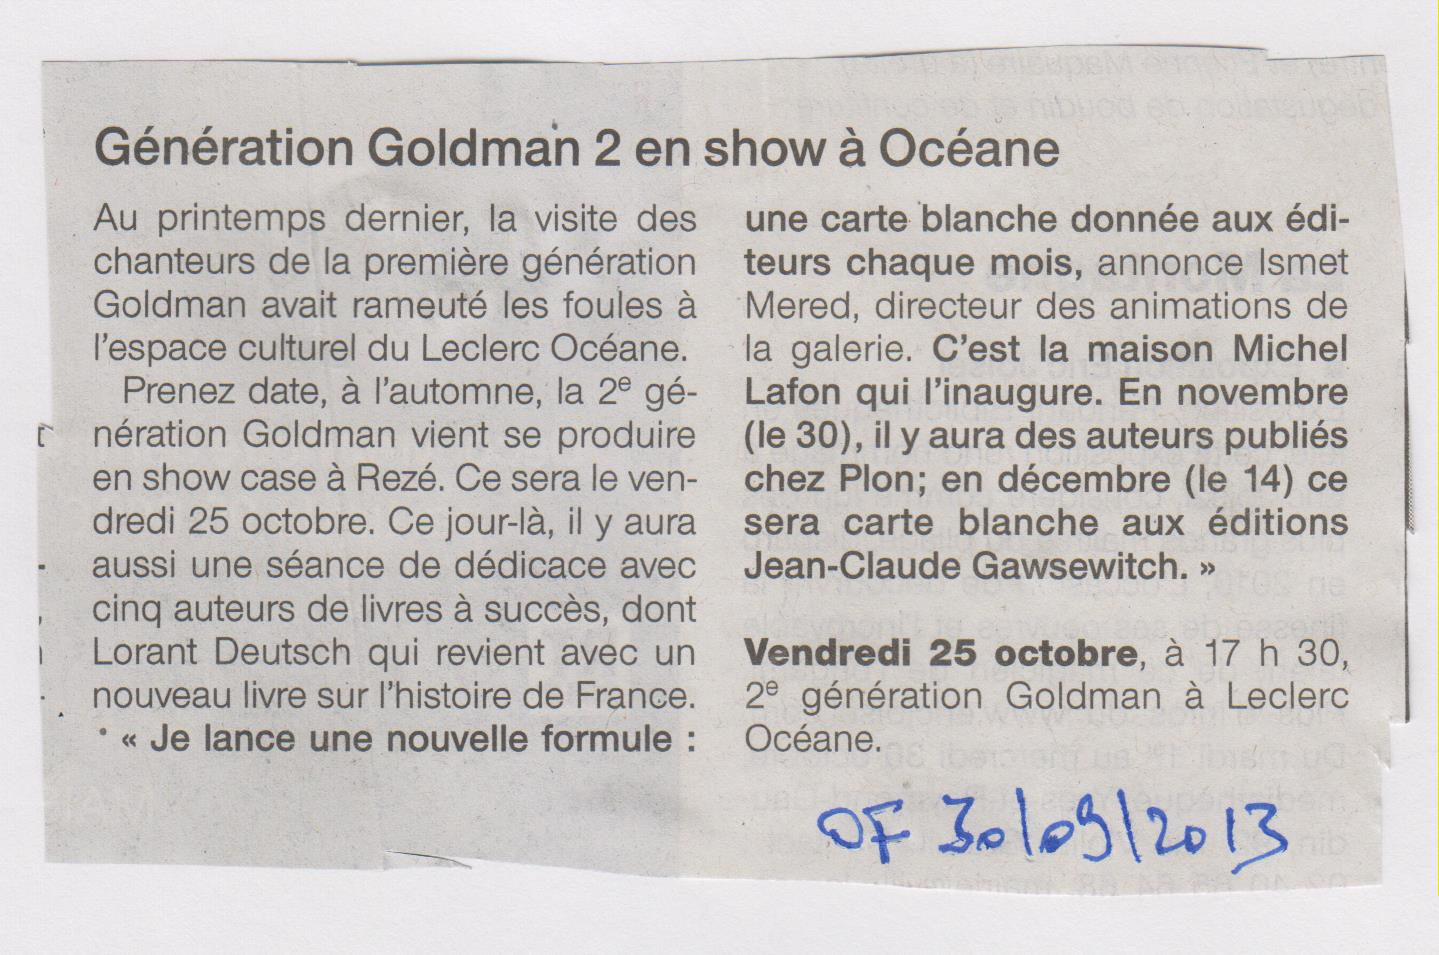 OUEST FRANCE - 30.09.2013 - GENERATION GOLDMAN 2